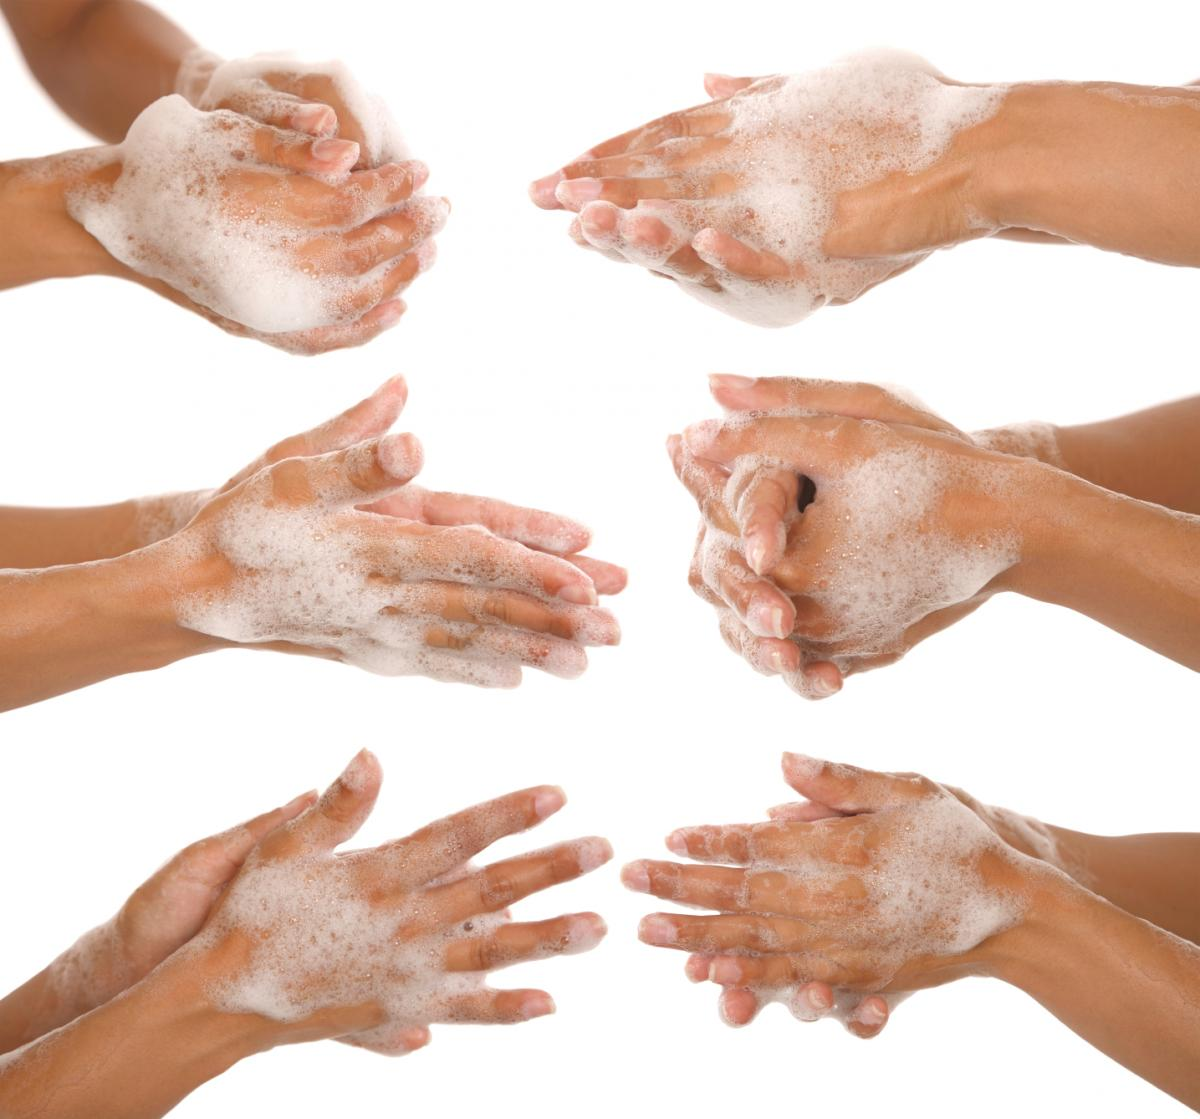 When & How to Use Hand Sanitizer in Community Settings